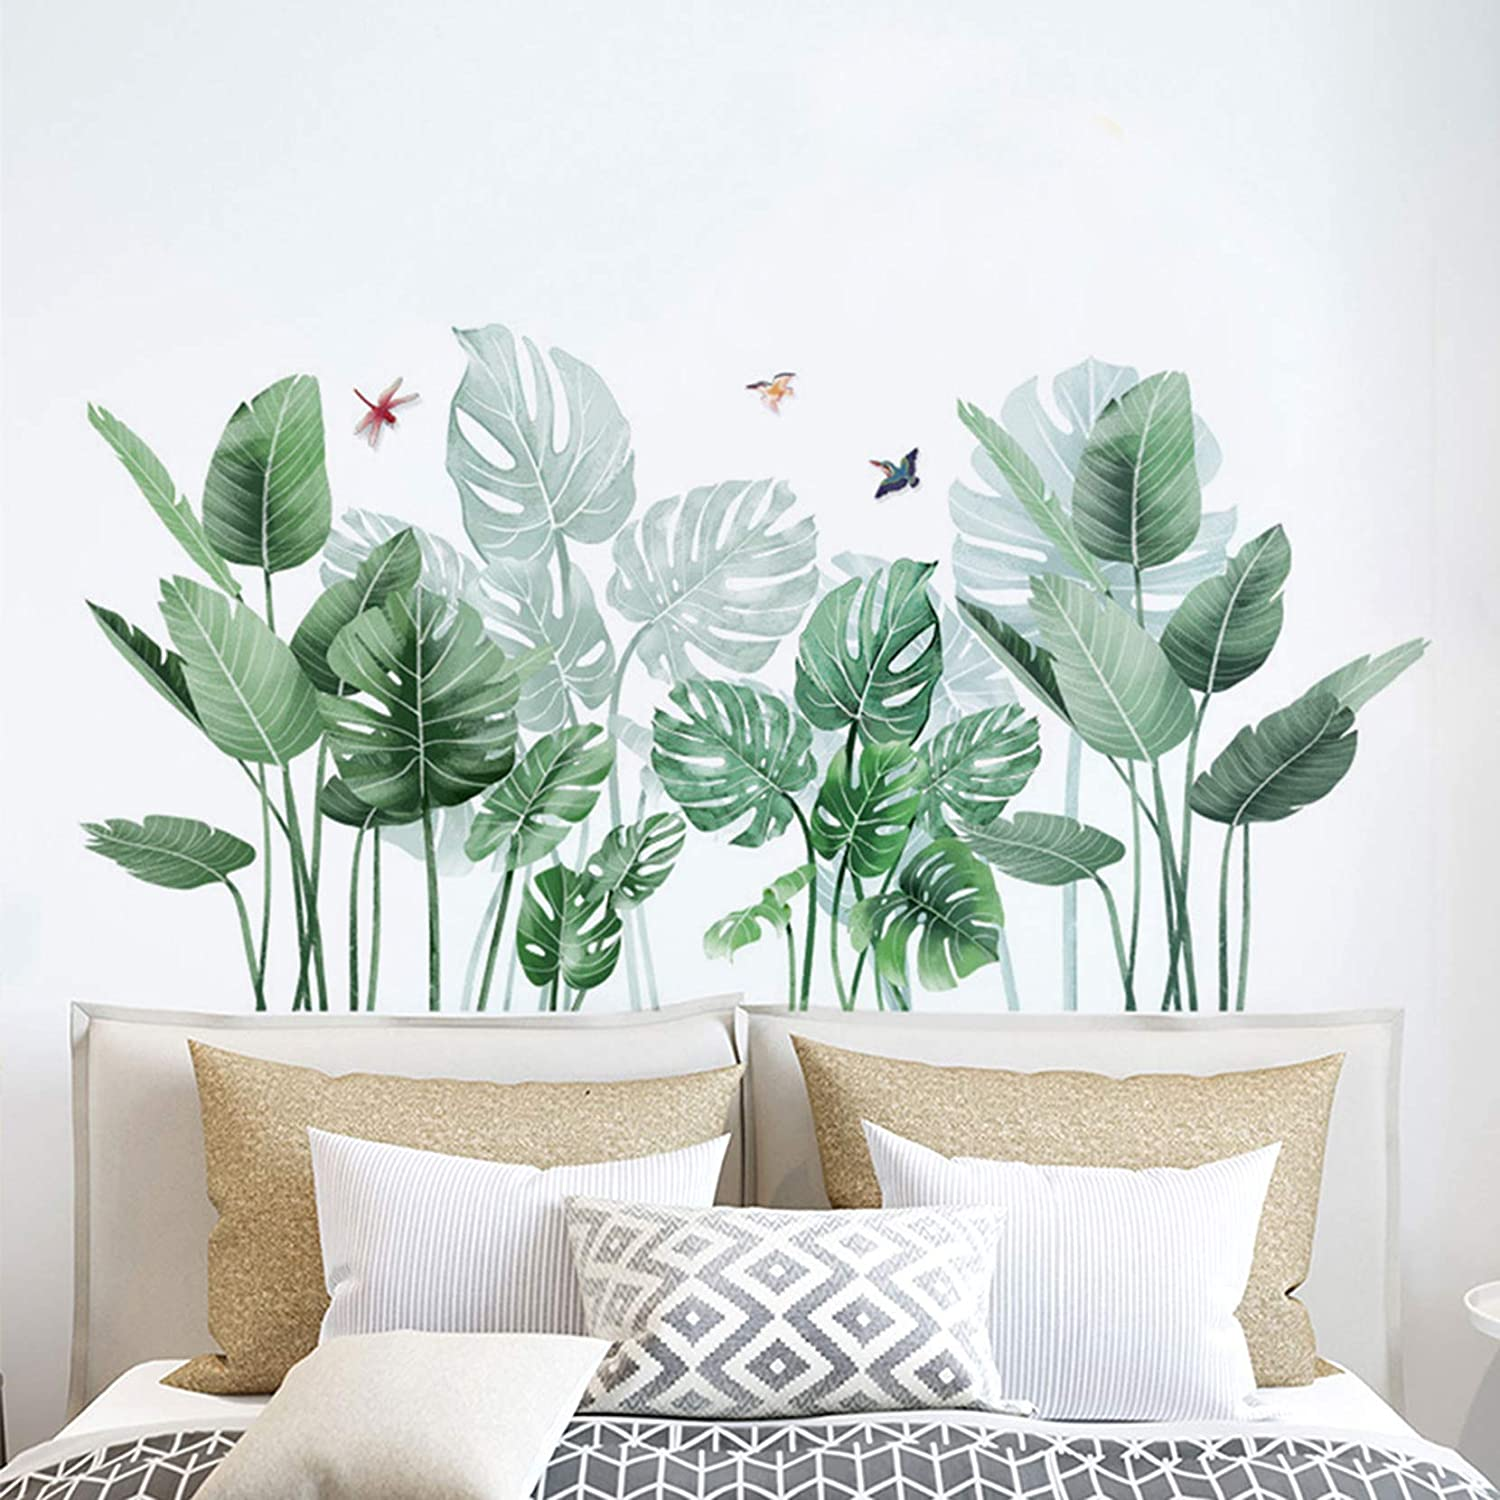 MOLANCIA Tropical Green Leaves Wall Decals, Palms Tree Leaf Wall Stickers, Fresh Plants Nature Monstera Murals, Removable Waterproof Tropical Vinyl Wall Decor for Kids Bedroom Living Home Decorations